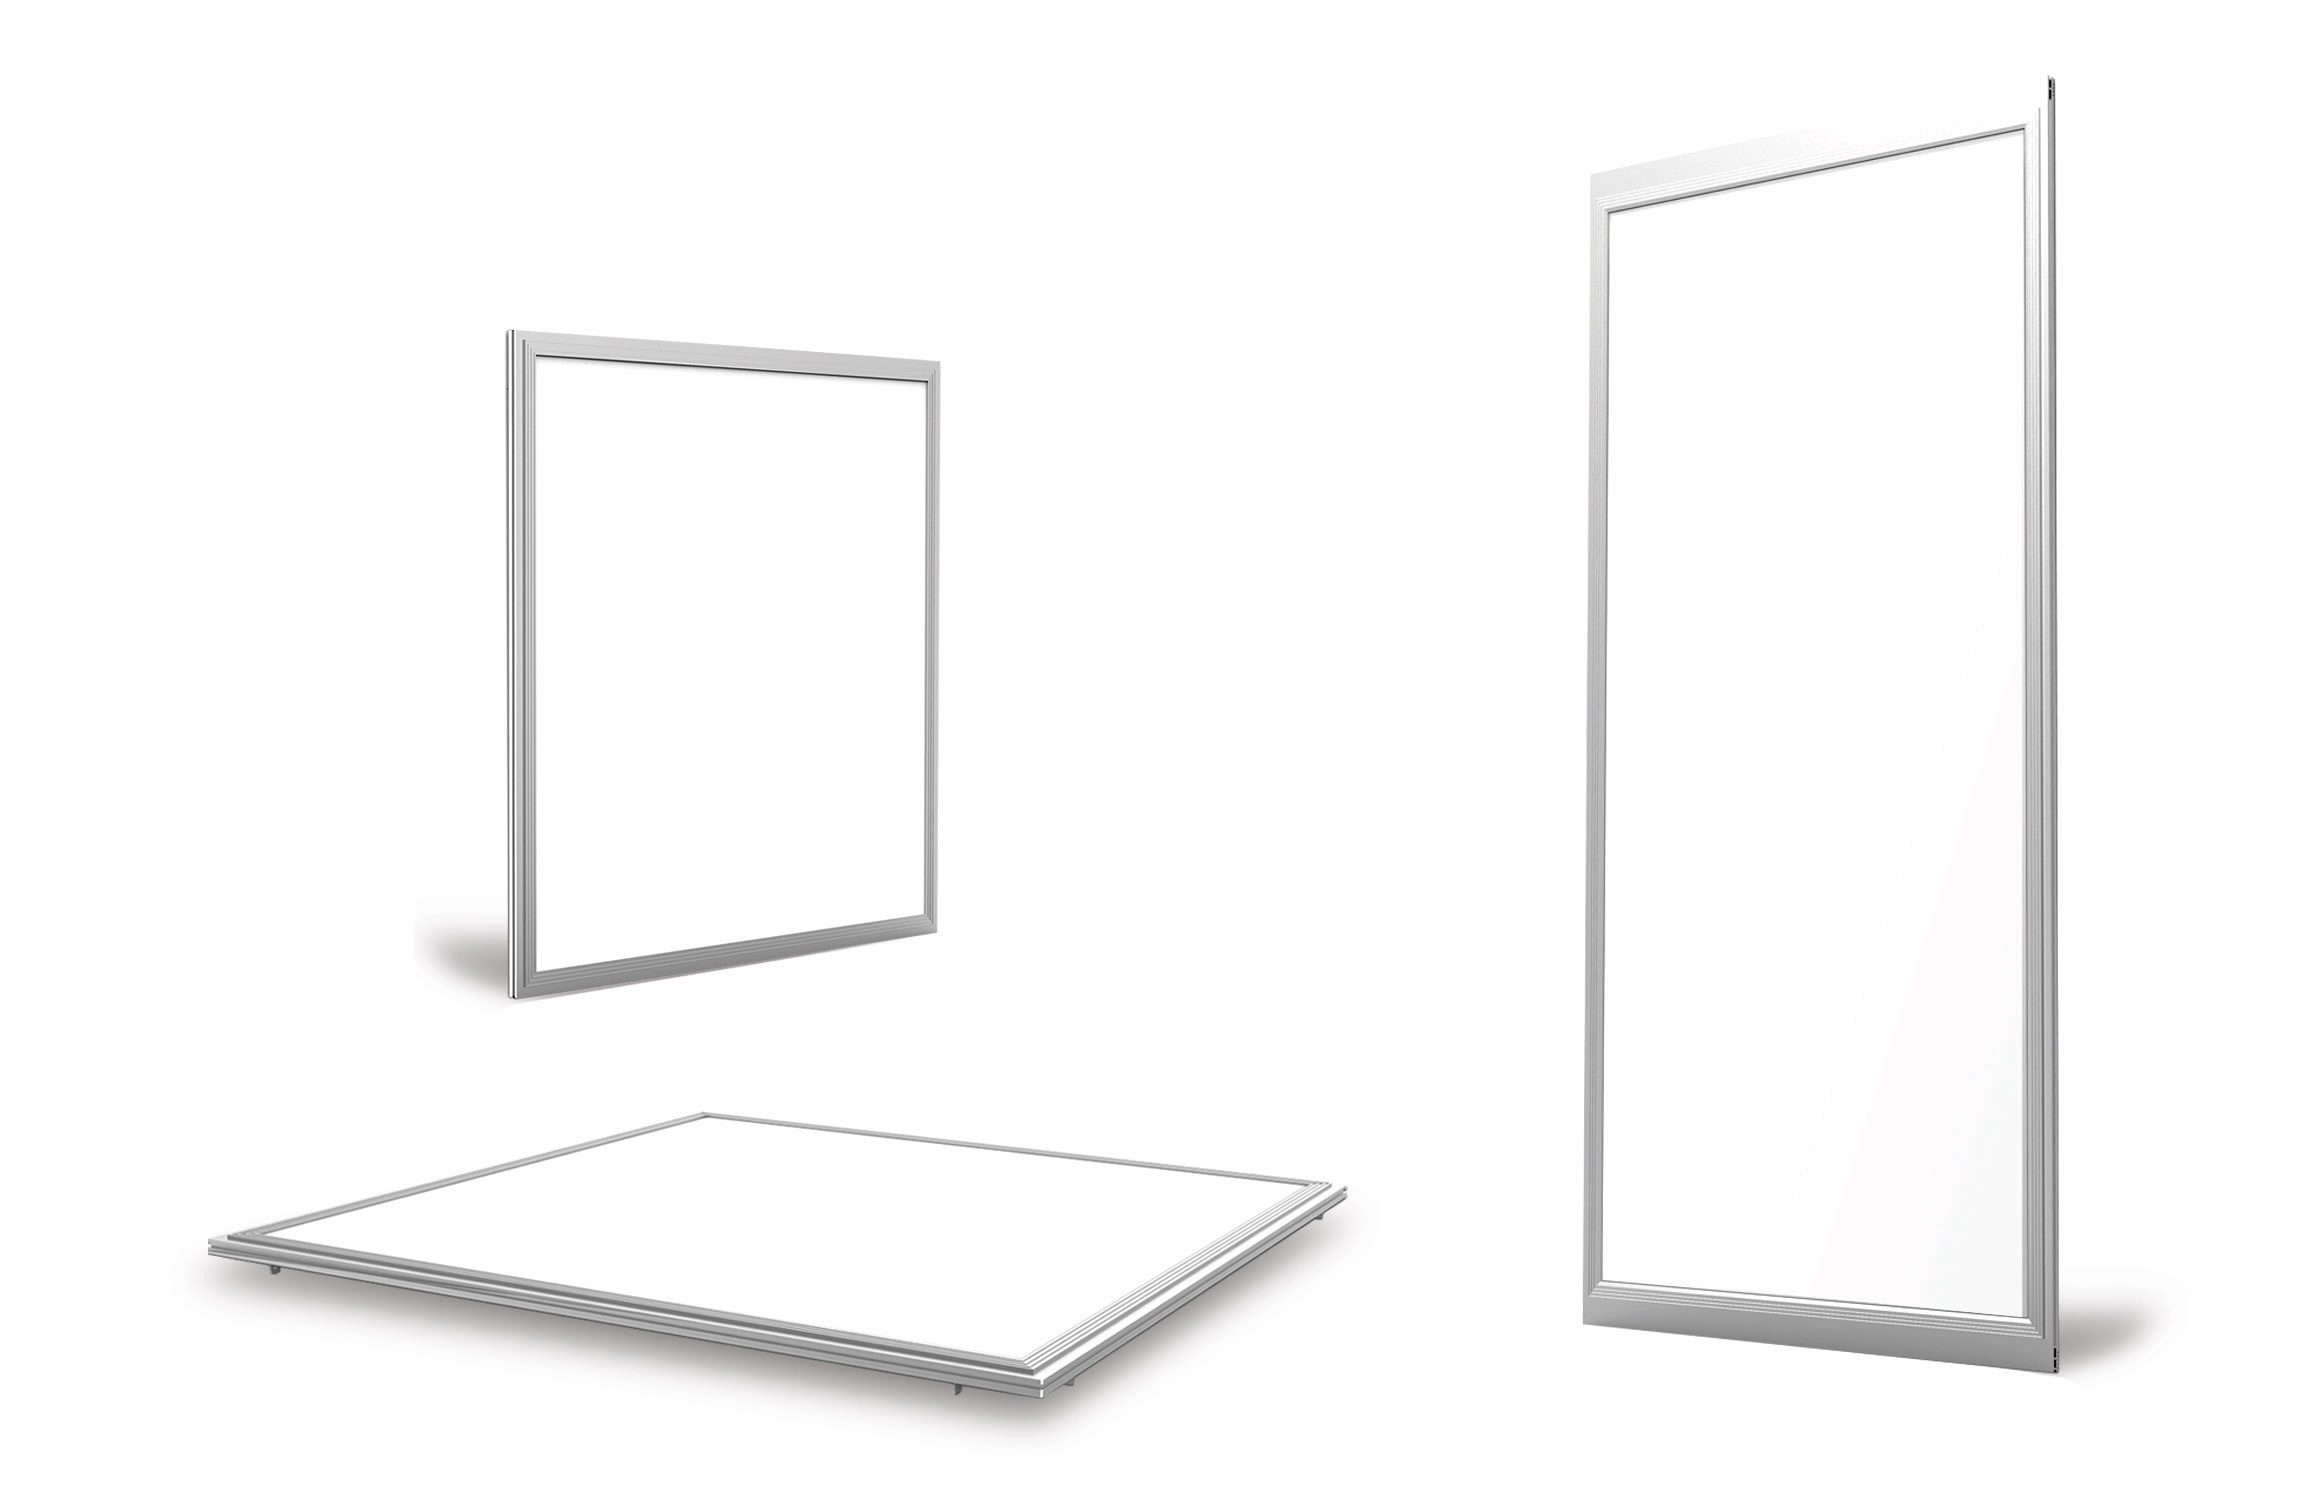 LED Panel Light 600X600, 2ftx2FT Ceiling Light pictures & photos